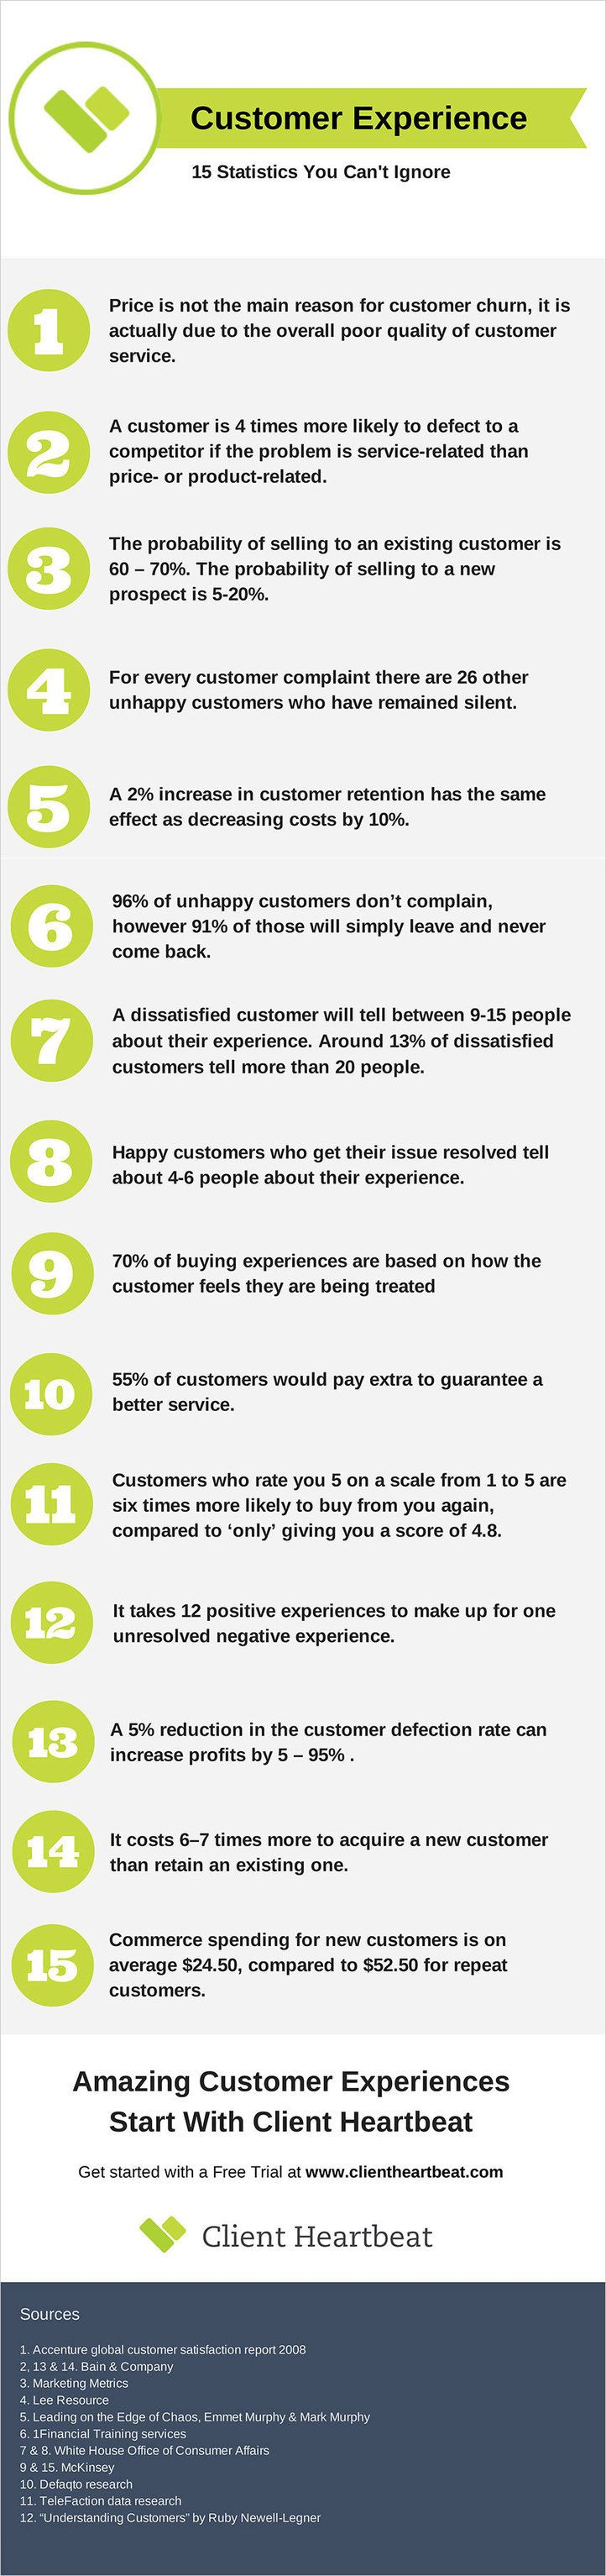 15 Customer Experience Statistics You Cannot Ignore